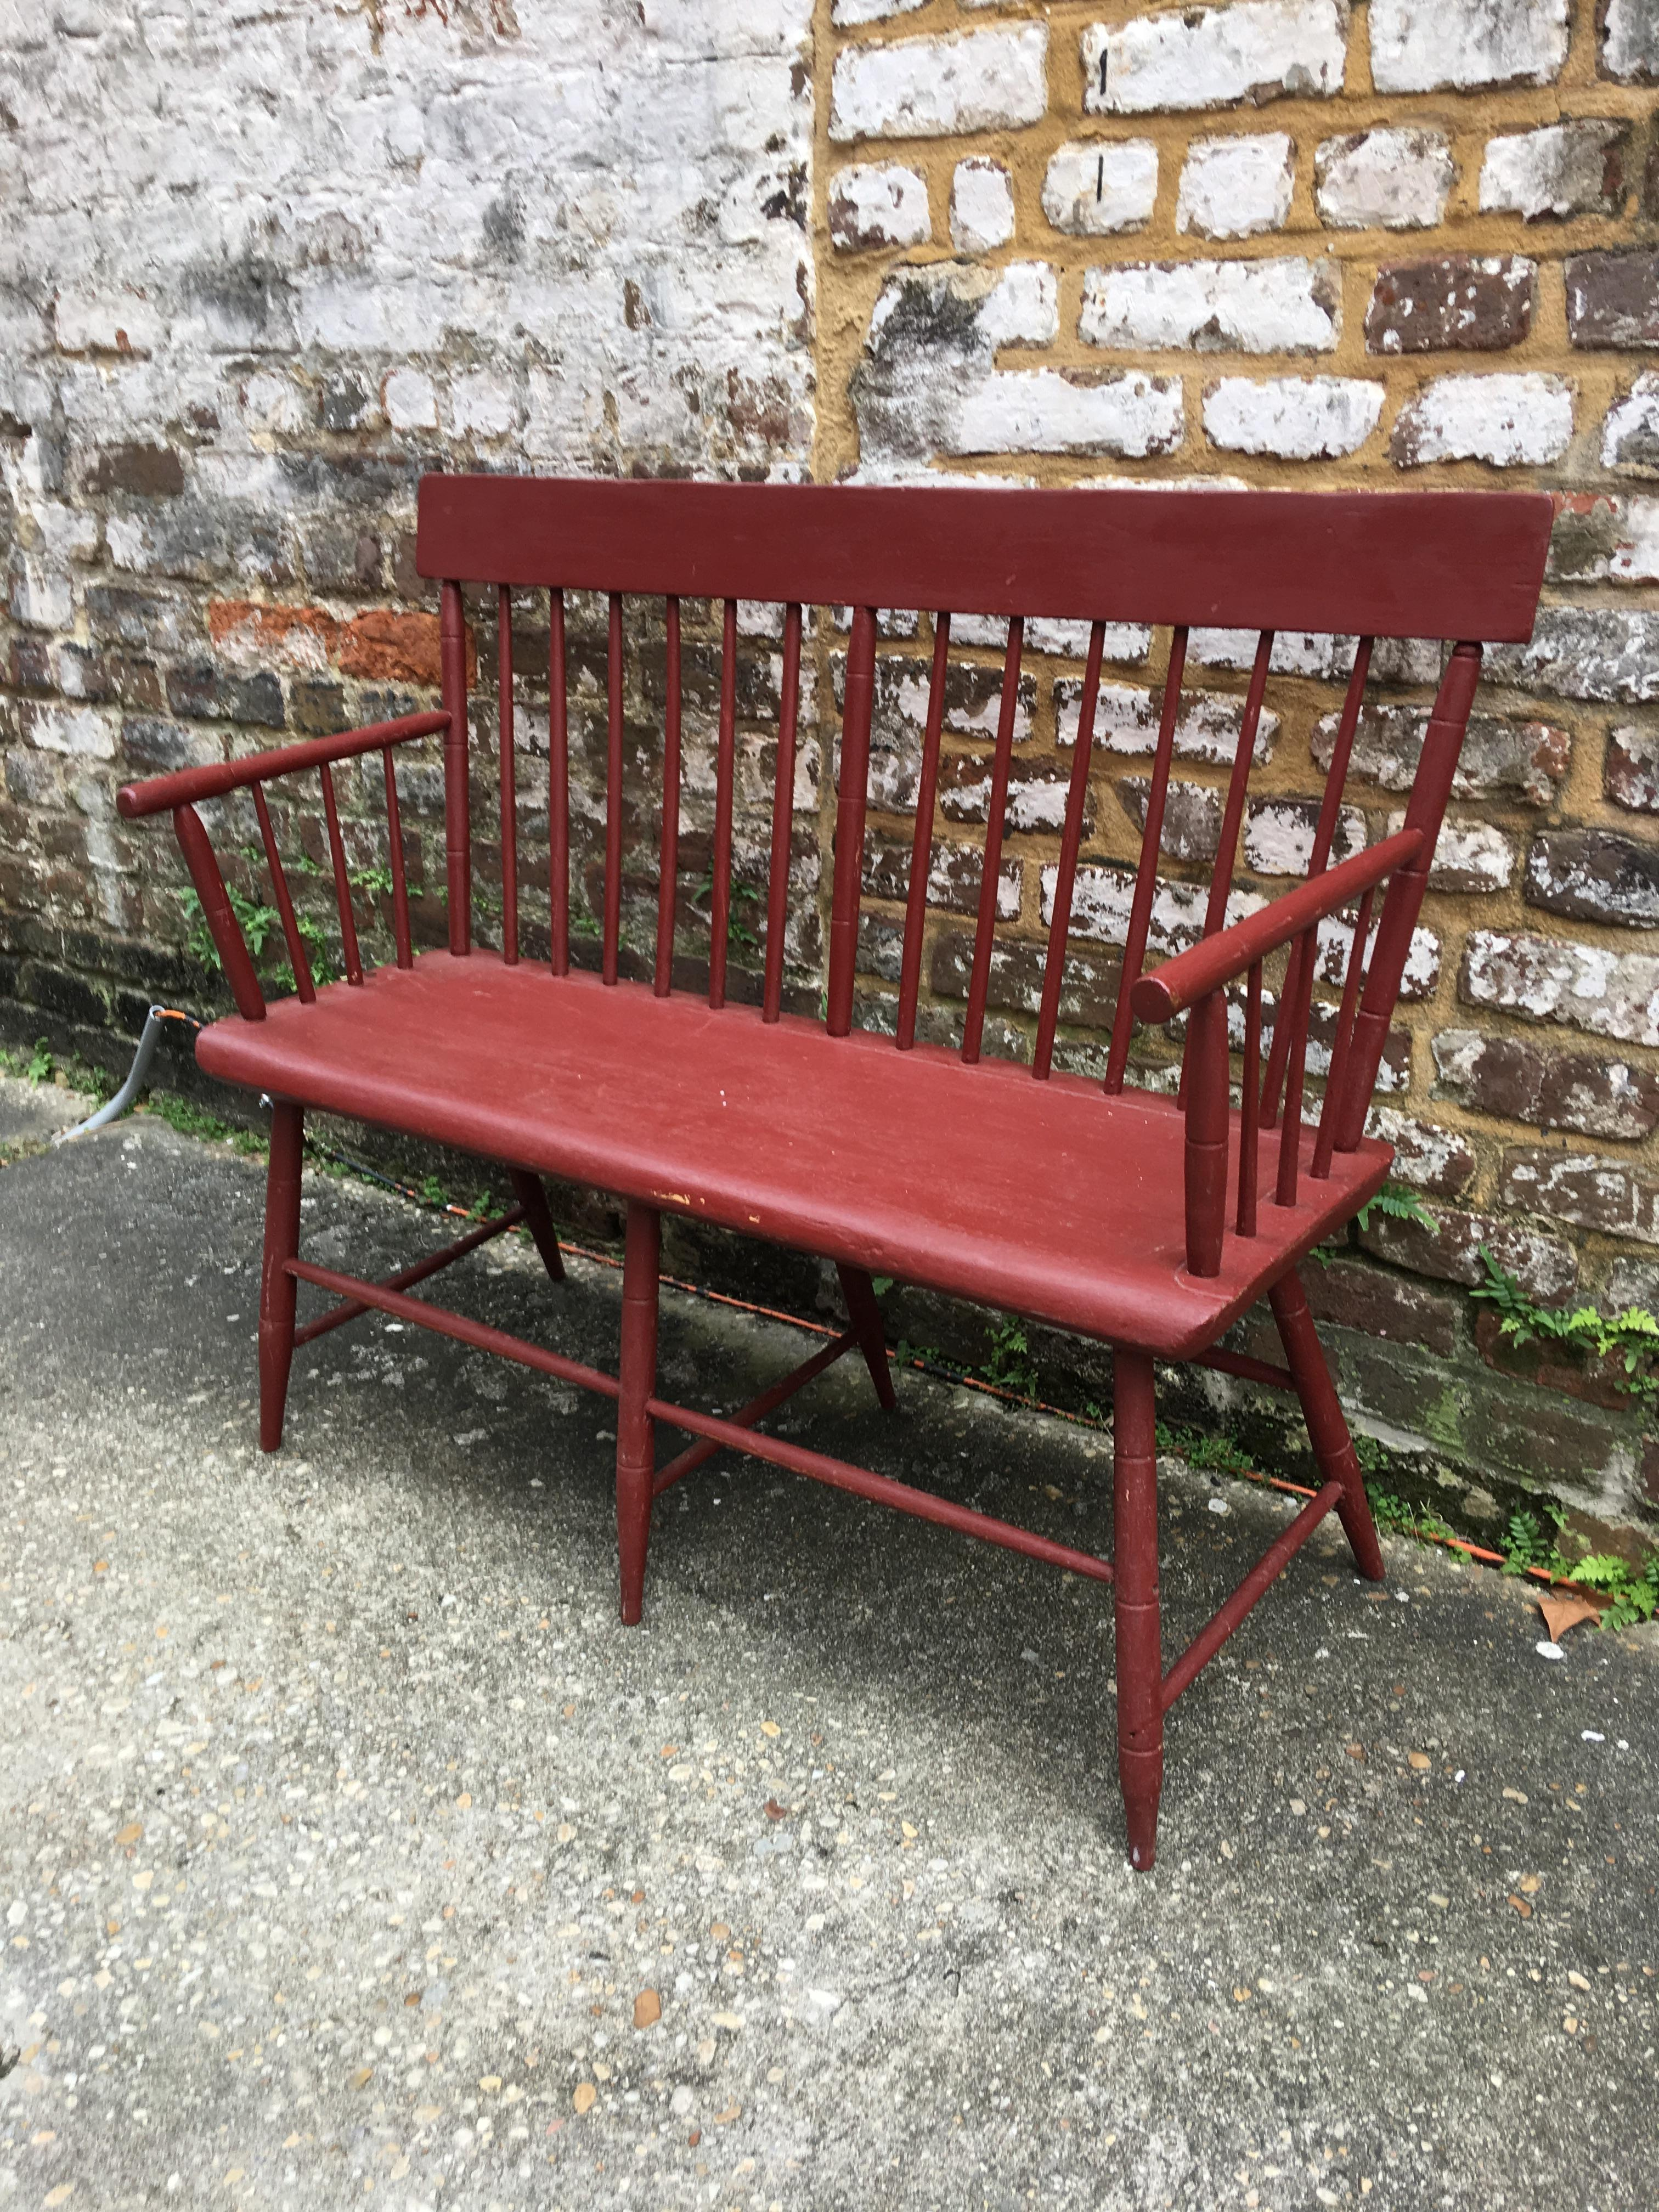 Awe Inspiring Small Painted Windsor Bench Circa 1830 Andrewgaddart Wooden Chair Designs For Living Room Andrewgaddartcom